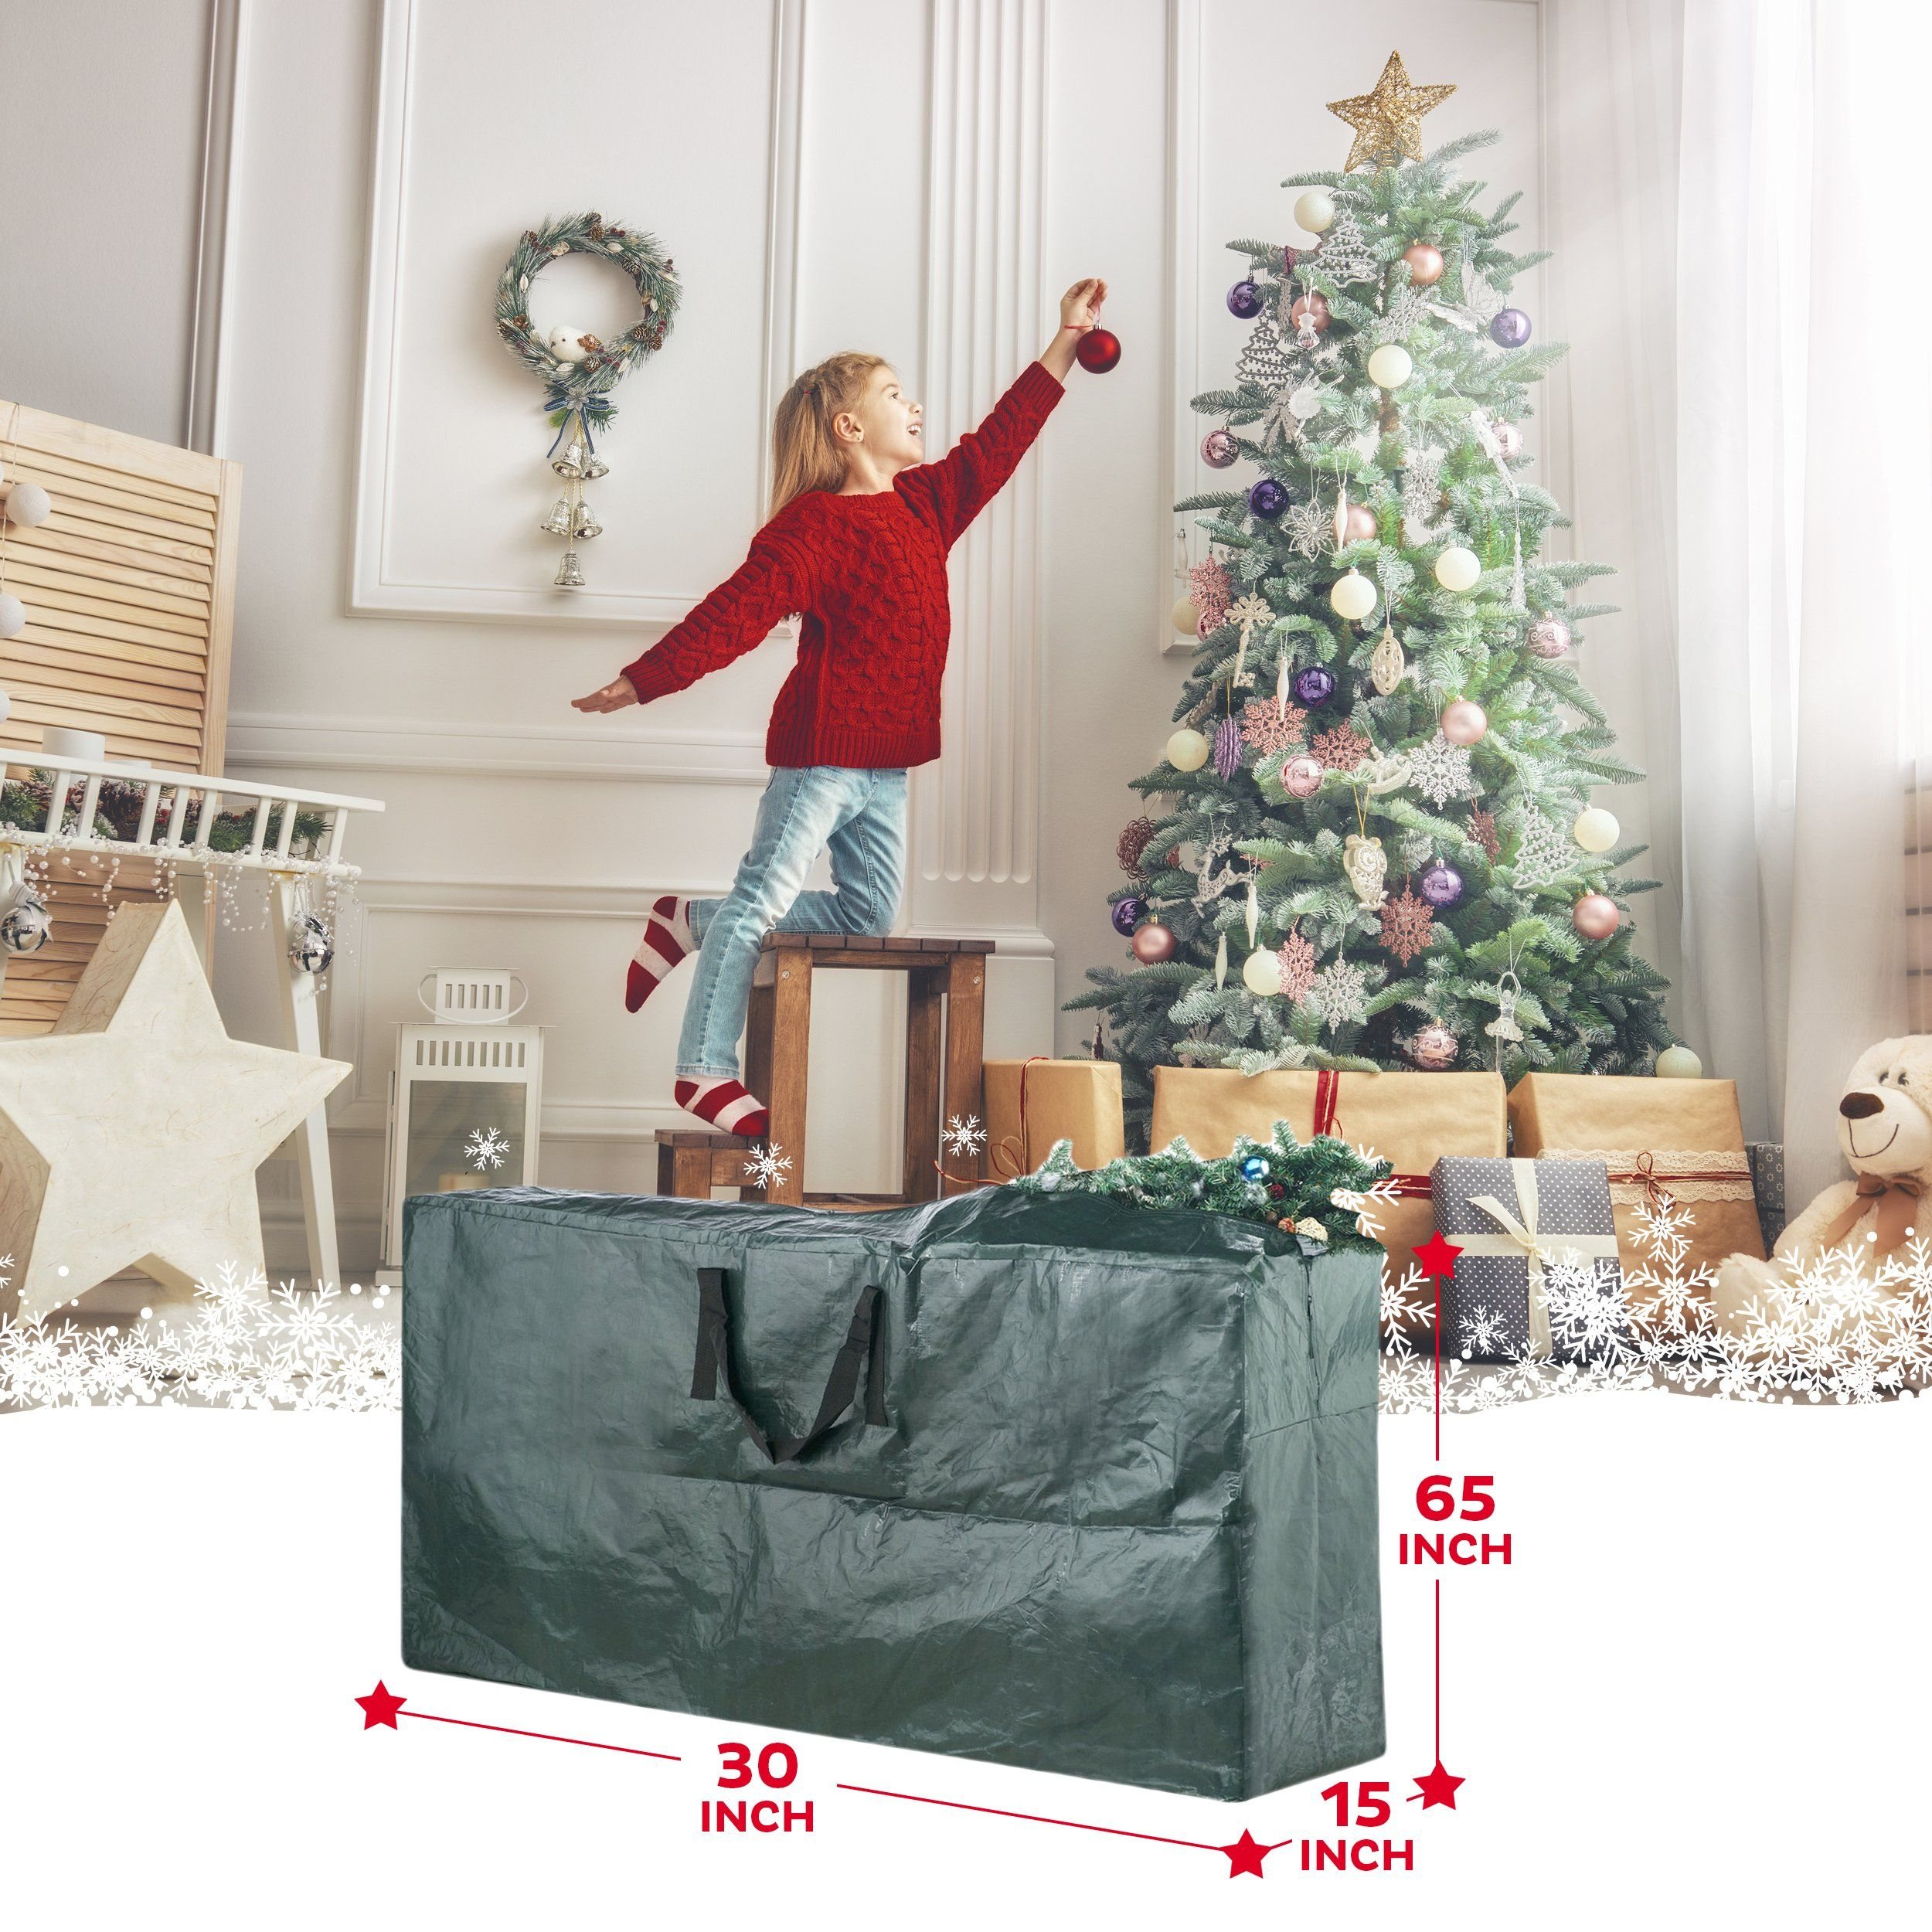 Domett Premium Christmas Tree Storage Bag Extra Large Holiday Decoration Container Hold With Images Christmas Tree Storage Bag Christmas Tree Storage Christmas Decorations